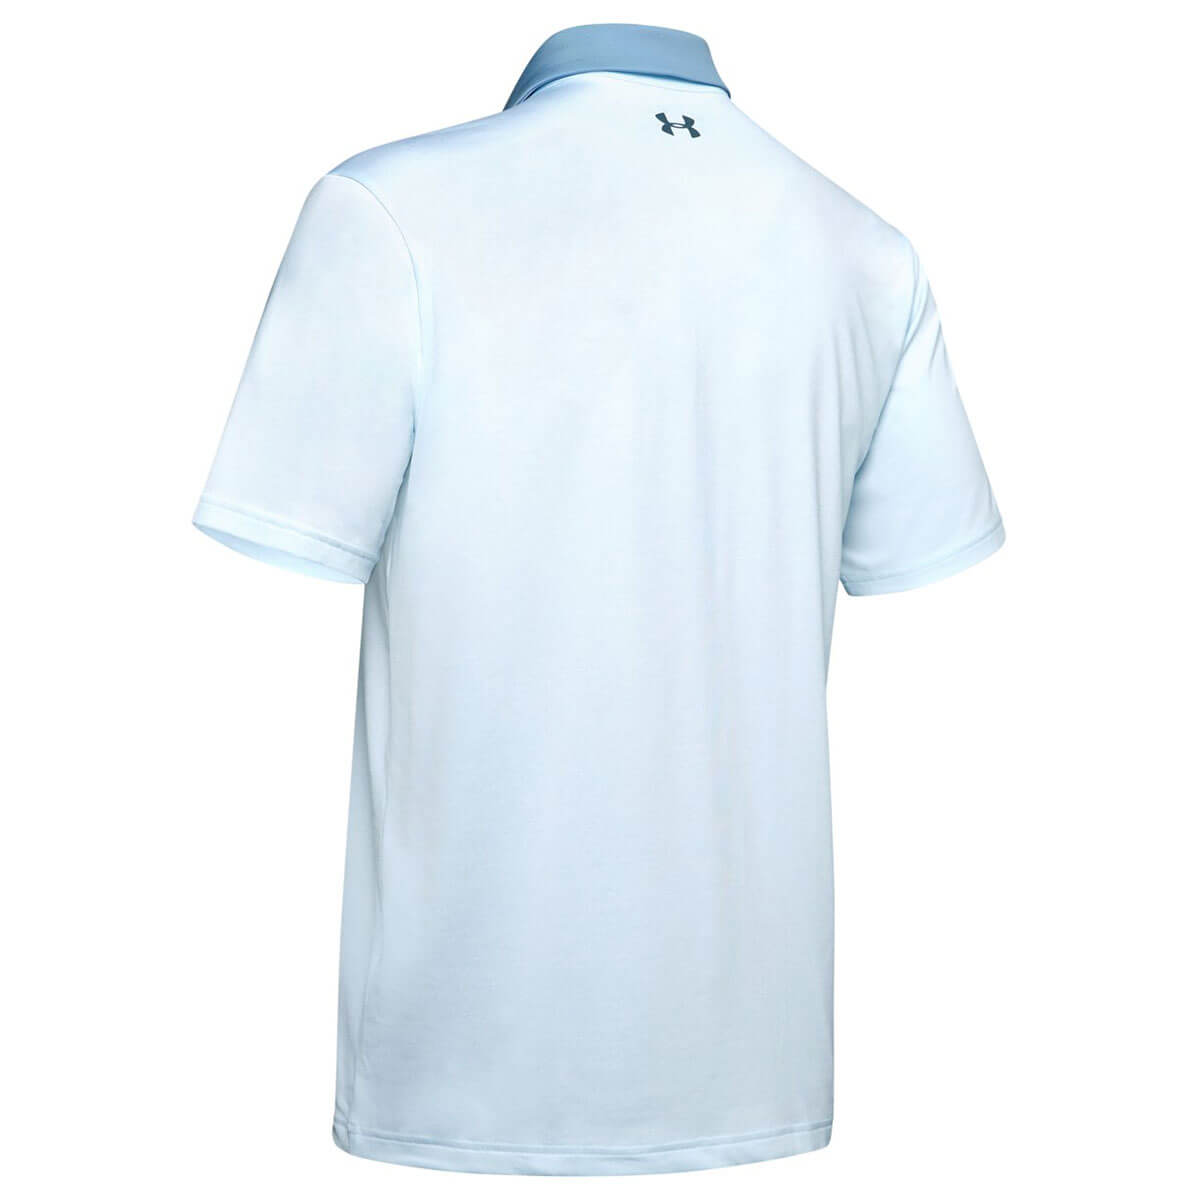 Under-Armour-Mens-2019-Playoff-Polo-2-0-Breathable-Light-Stretch-Polo-Shirt thumbnail 63